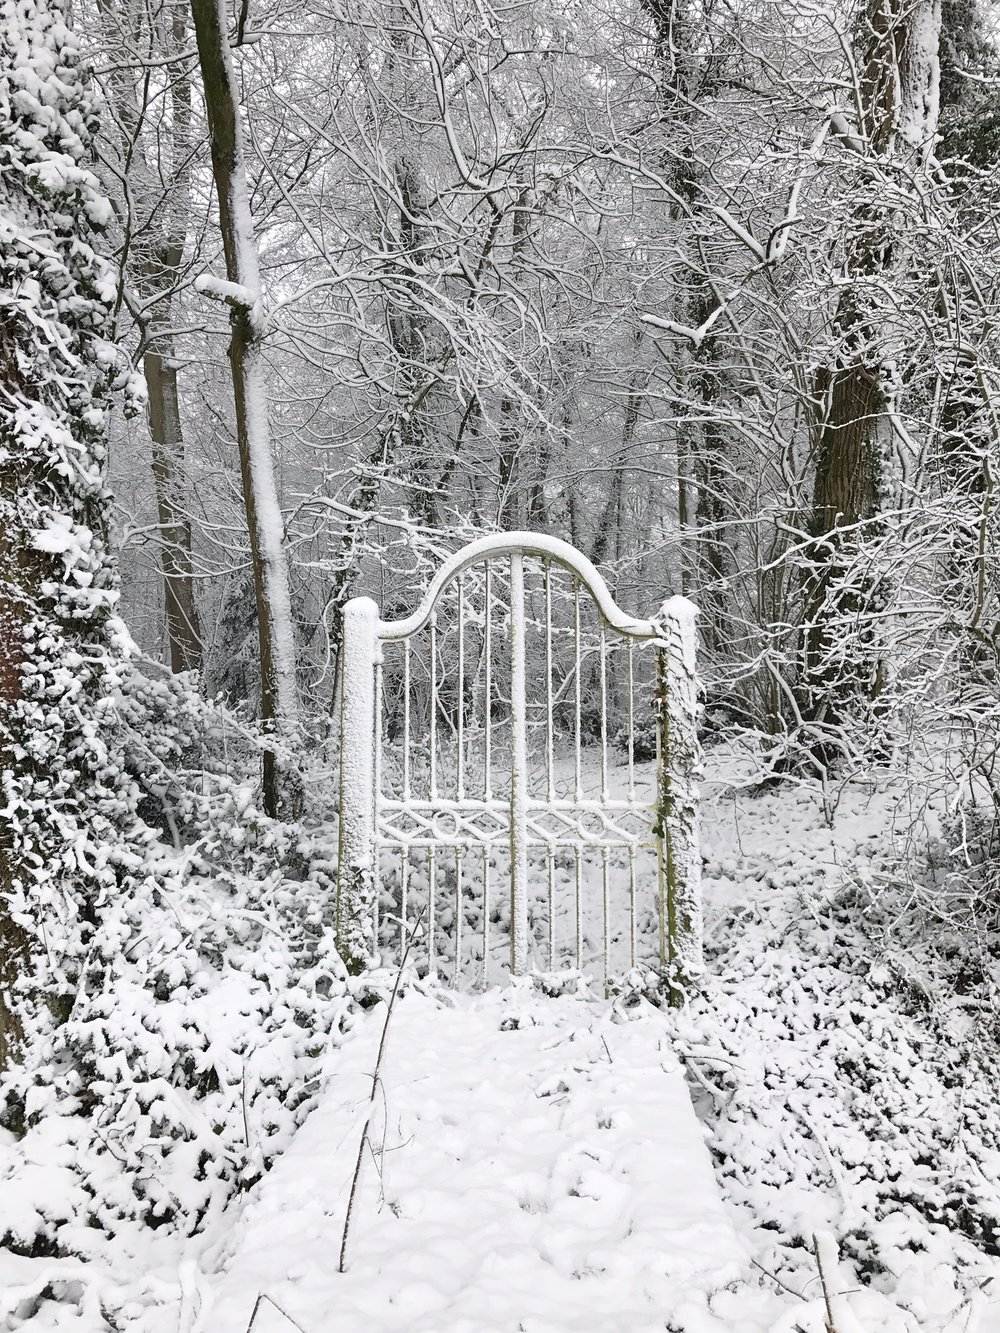 The gate to nowhere at Chateau de la Ruche in winter